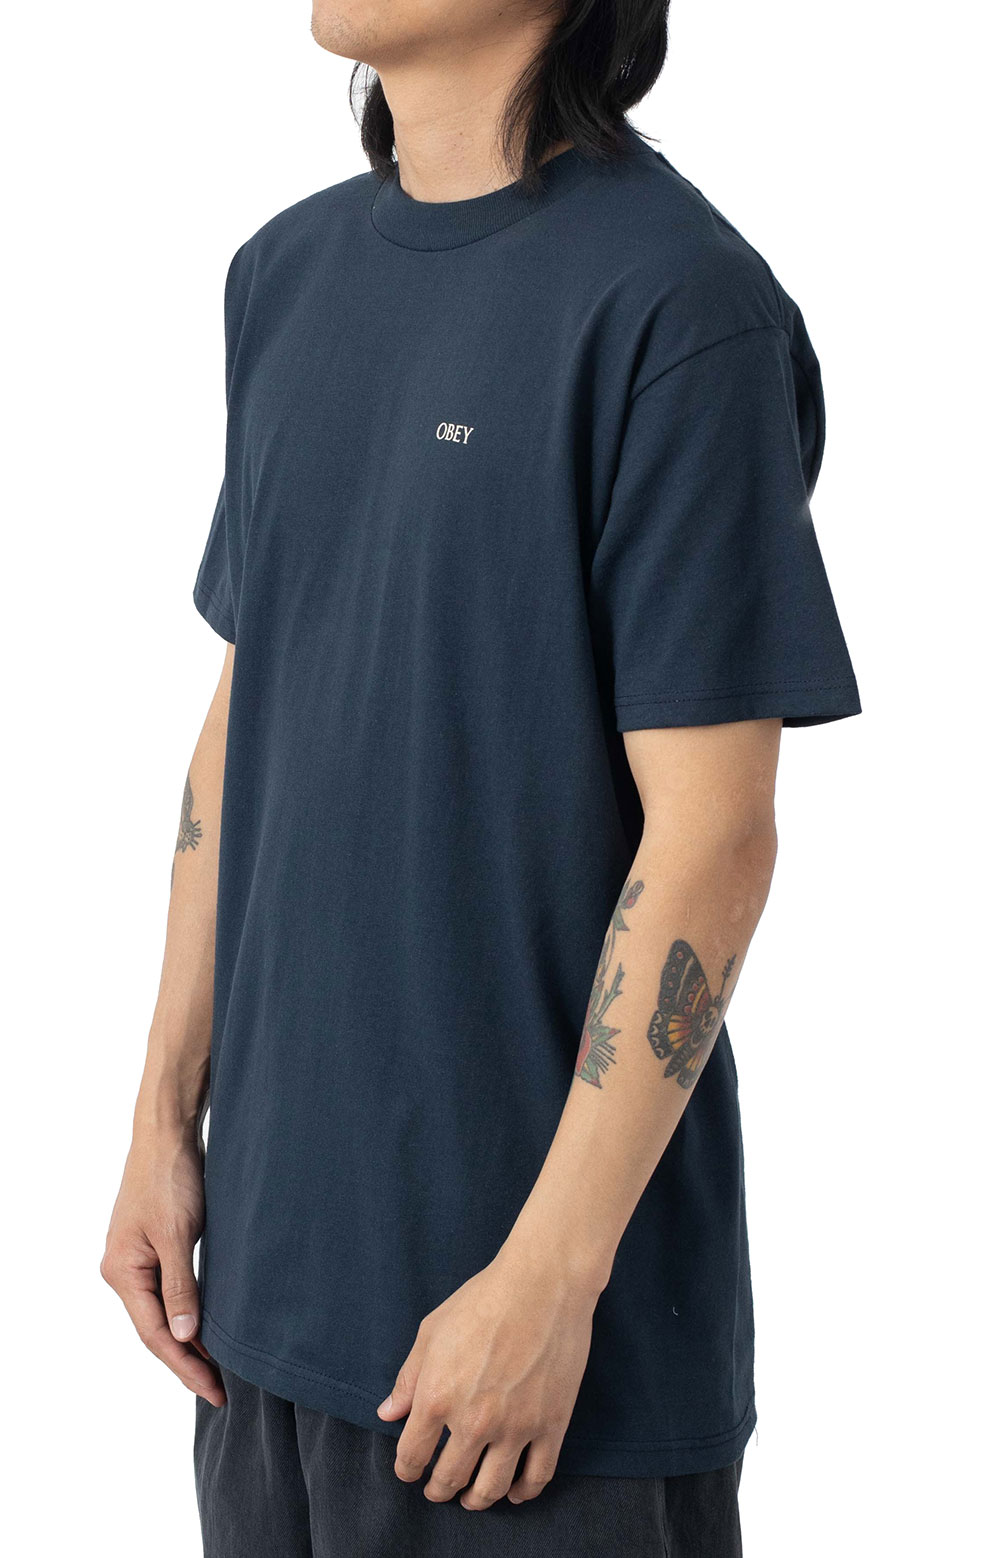 Obey Radiant Lotus T-Shirt - Navy  3